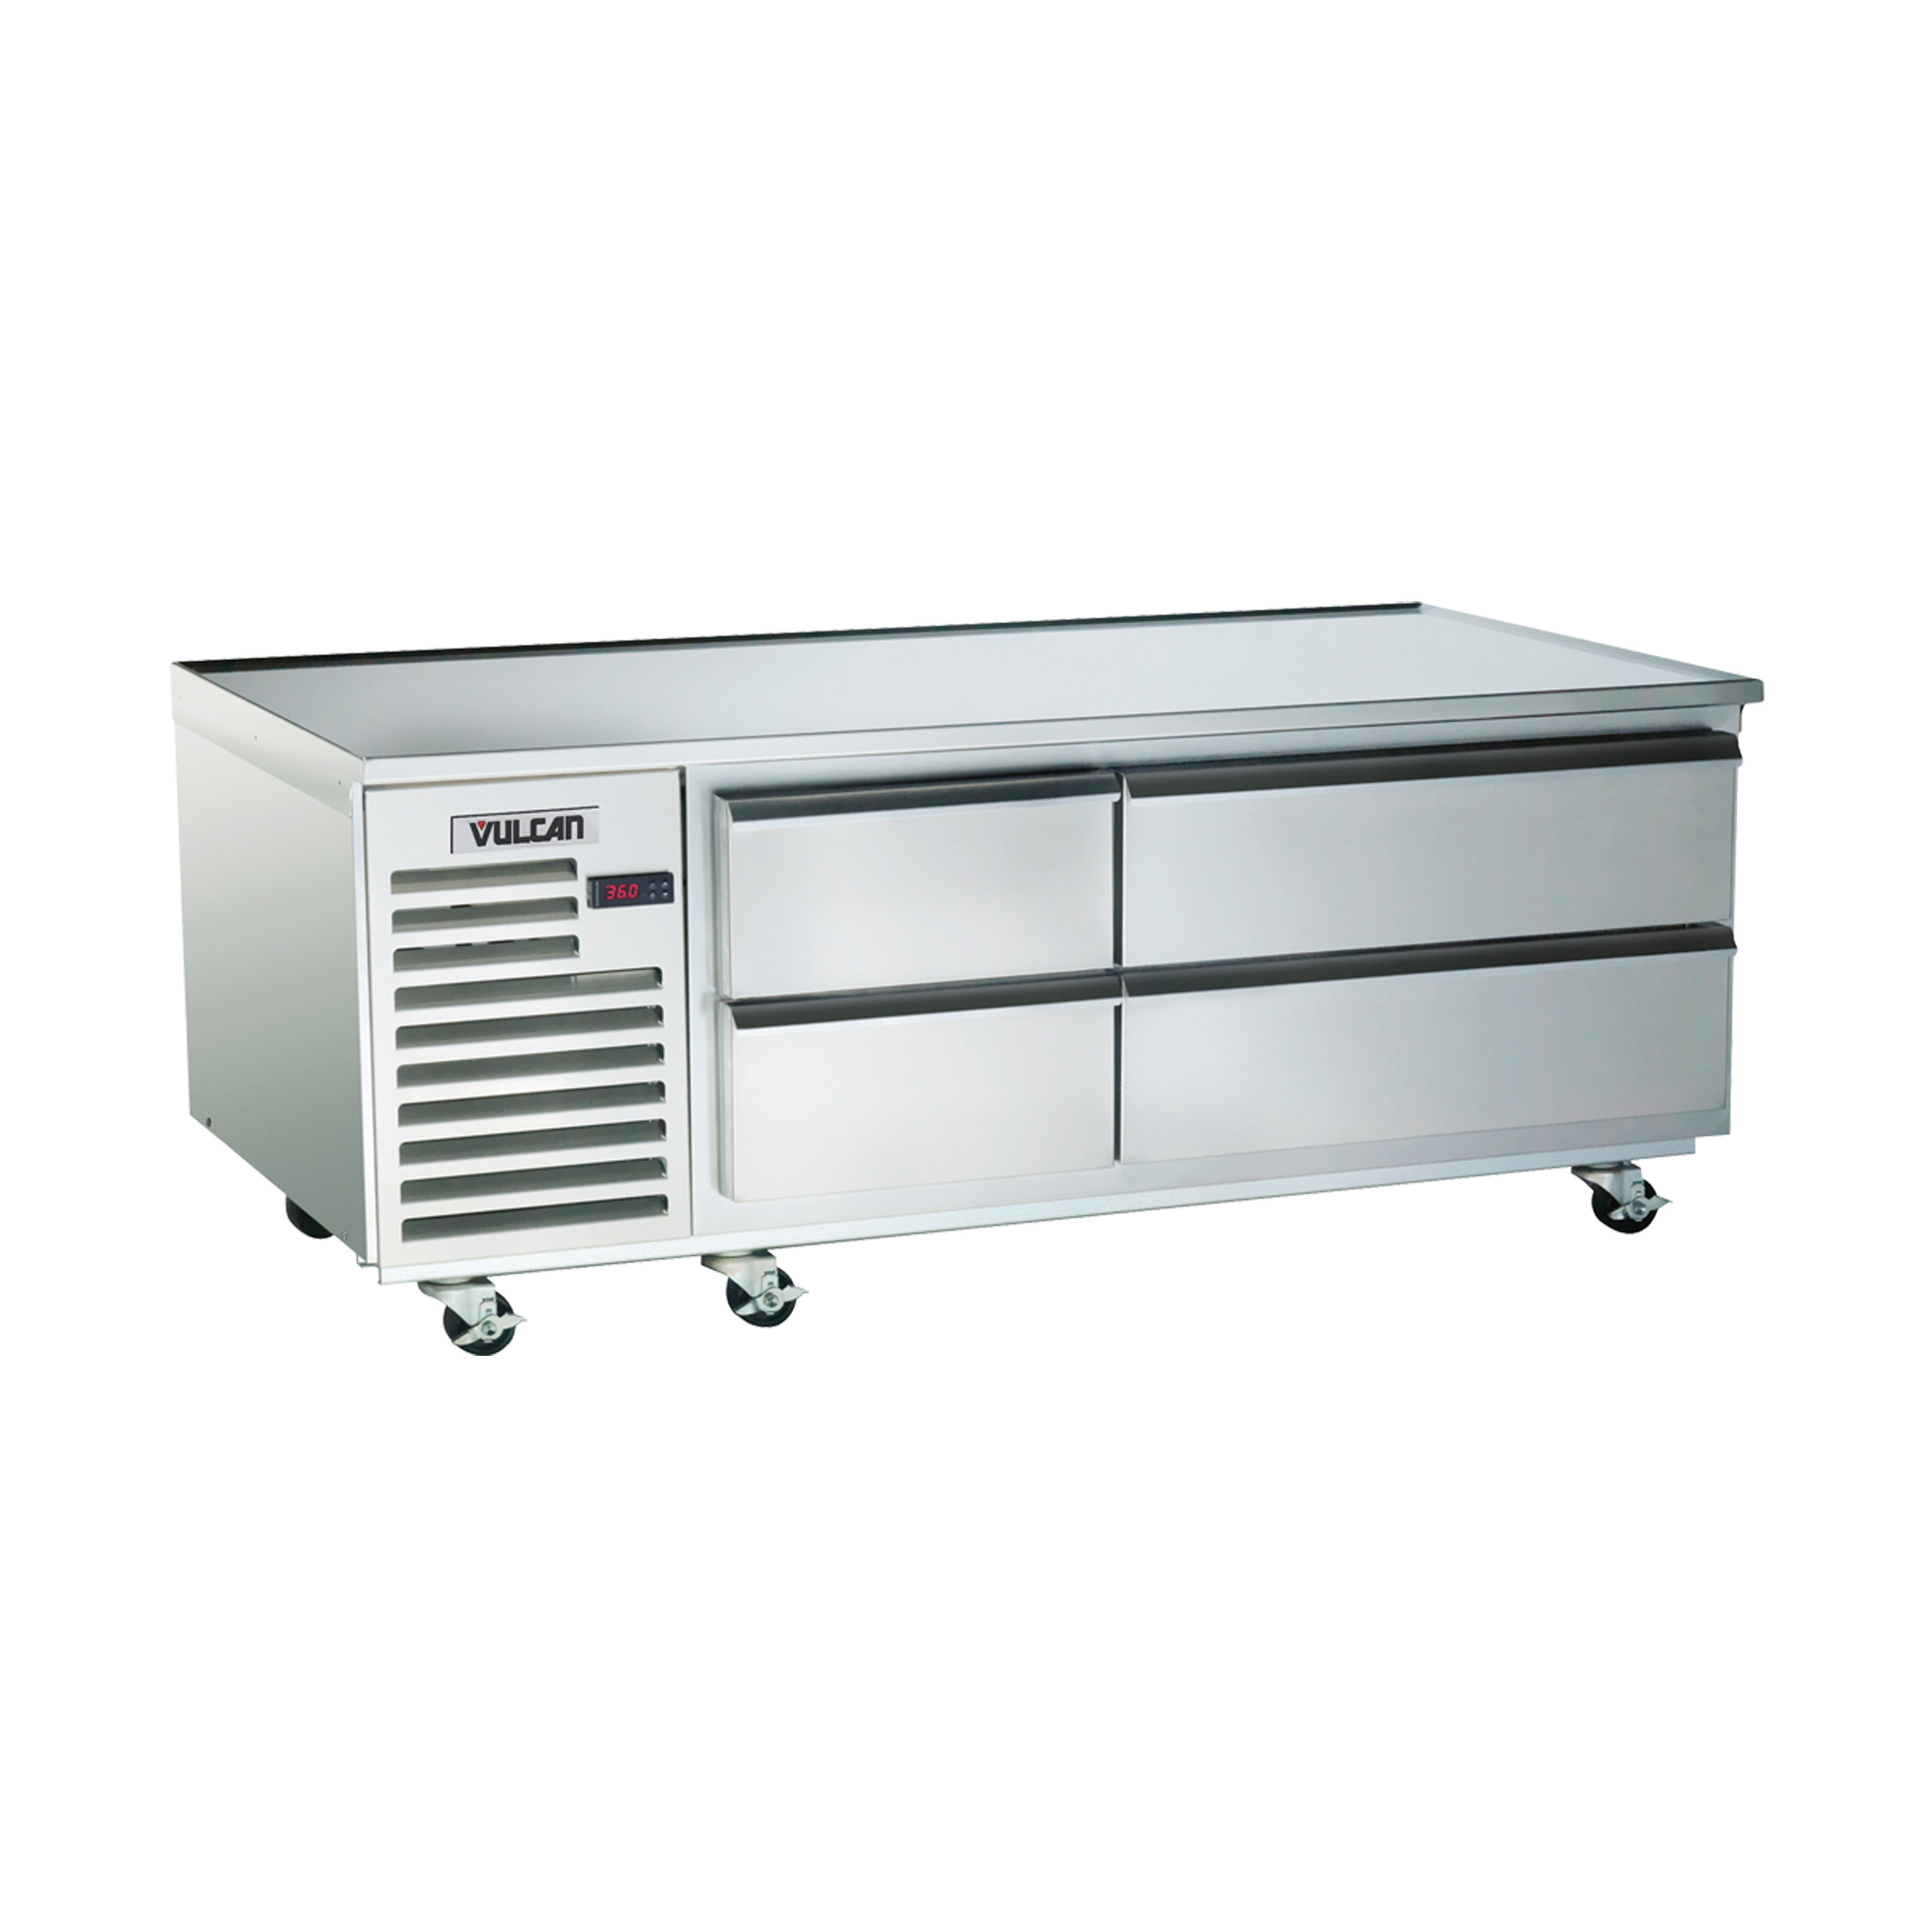 Vulcan VR36 equipment stand, refrigerated base